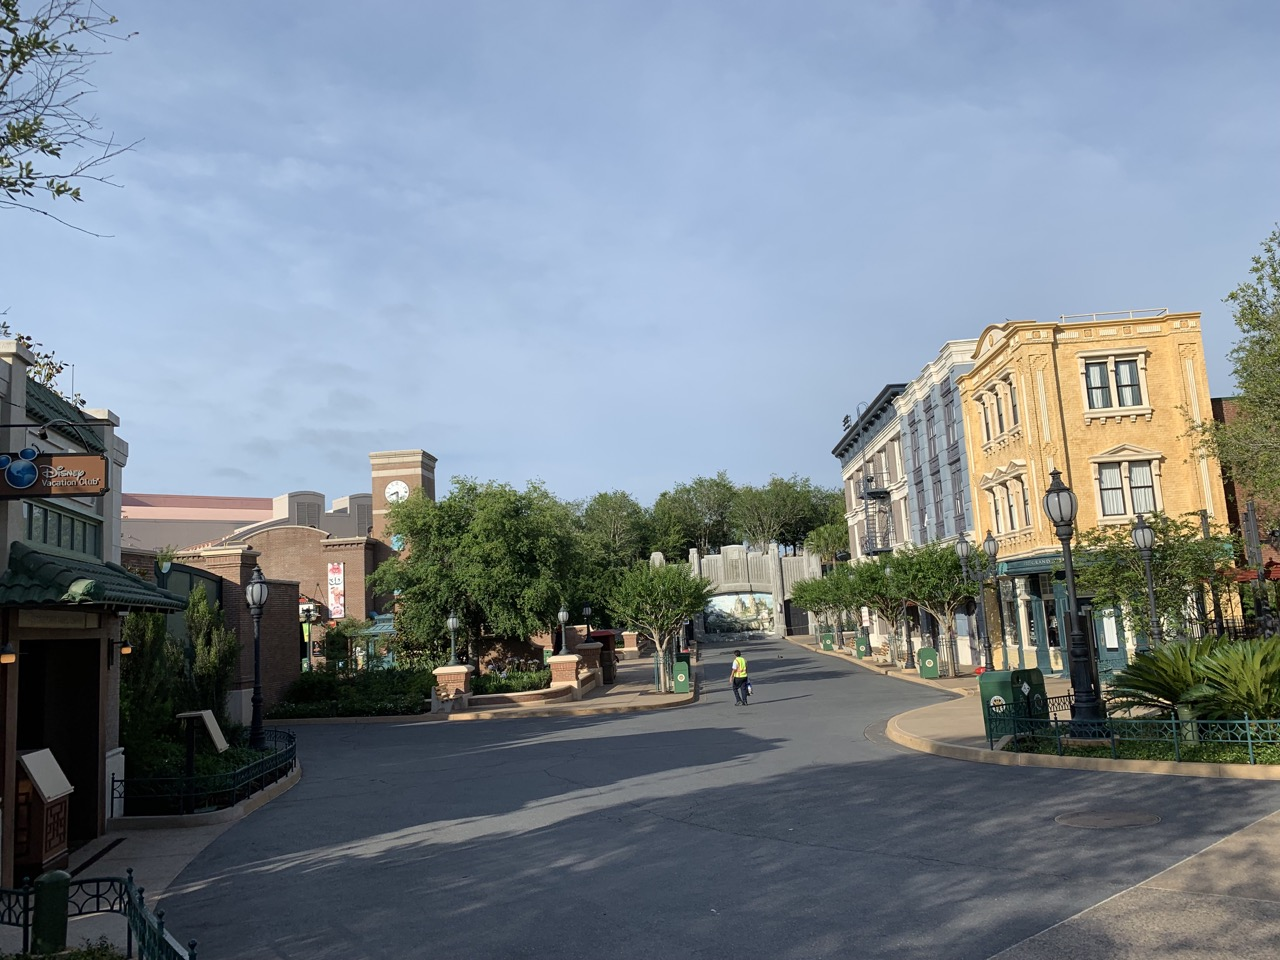 disney world trip report early summer 2019 day two 24 empty park.jpeg